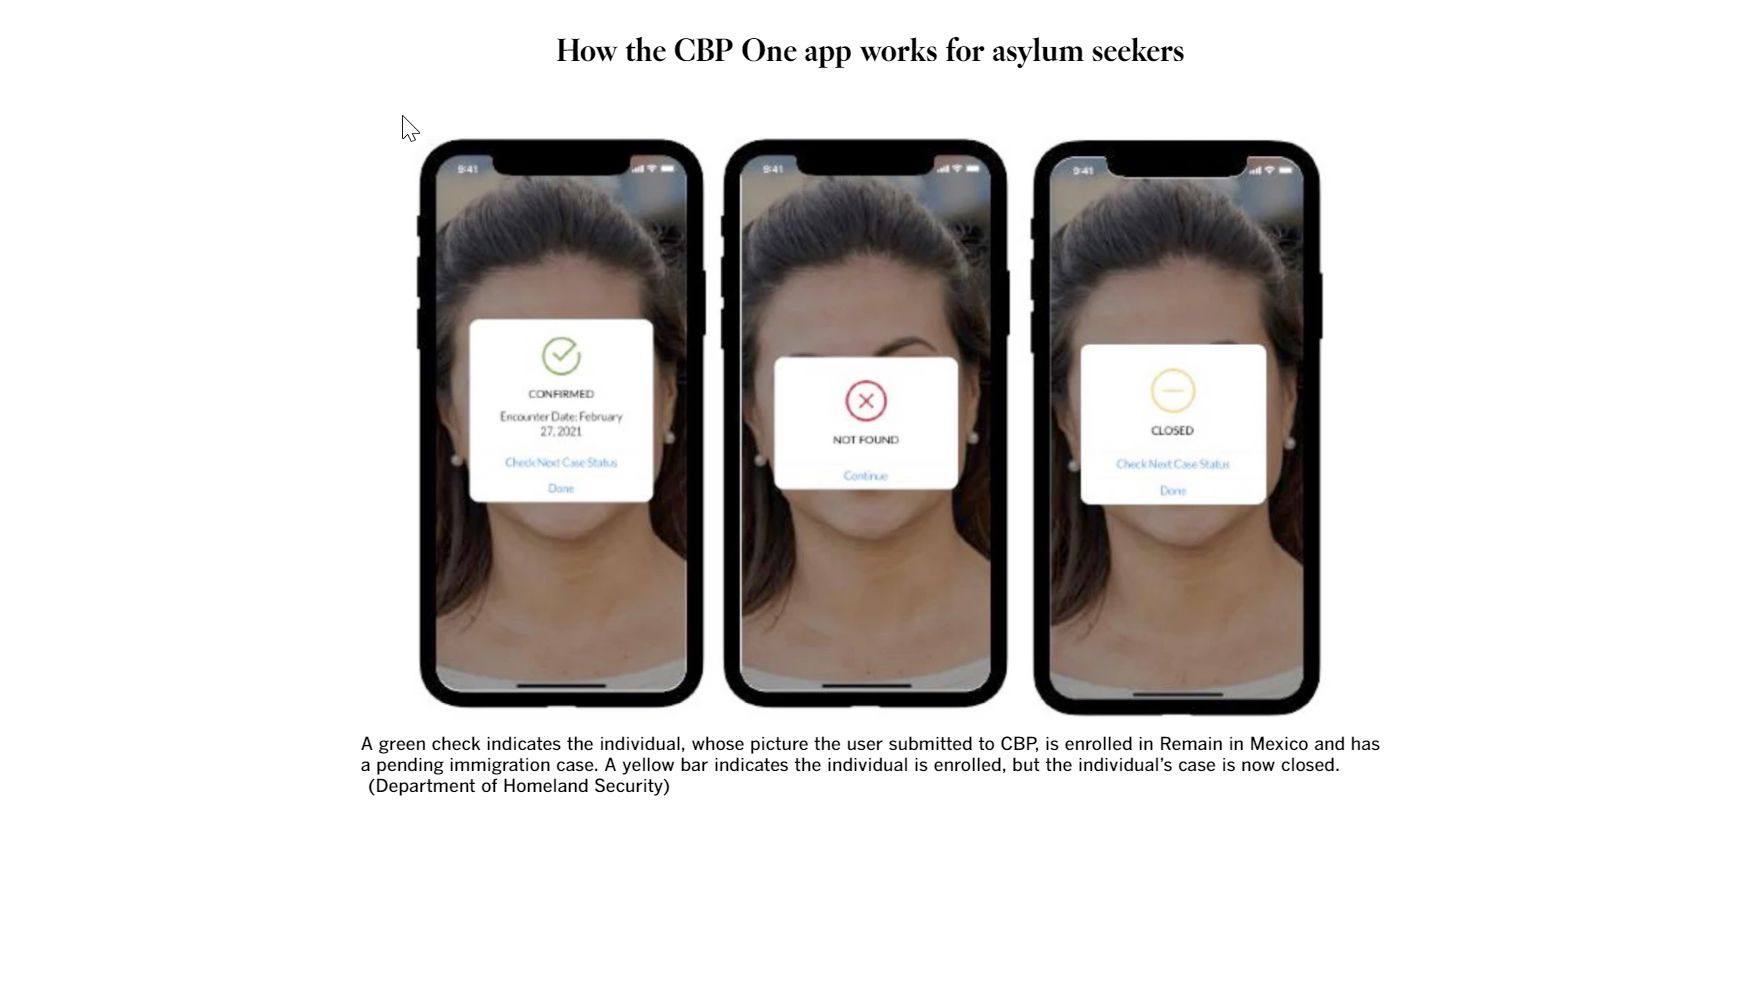 How the CBP One App Works For Asylum Seekers